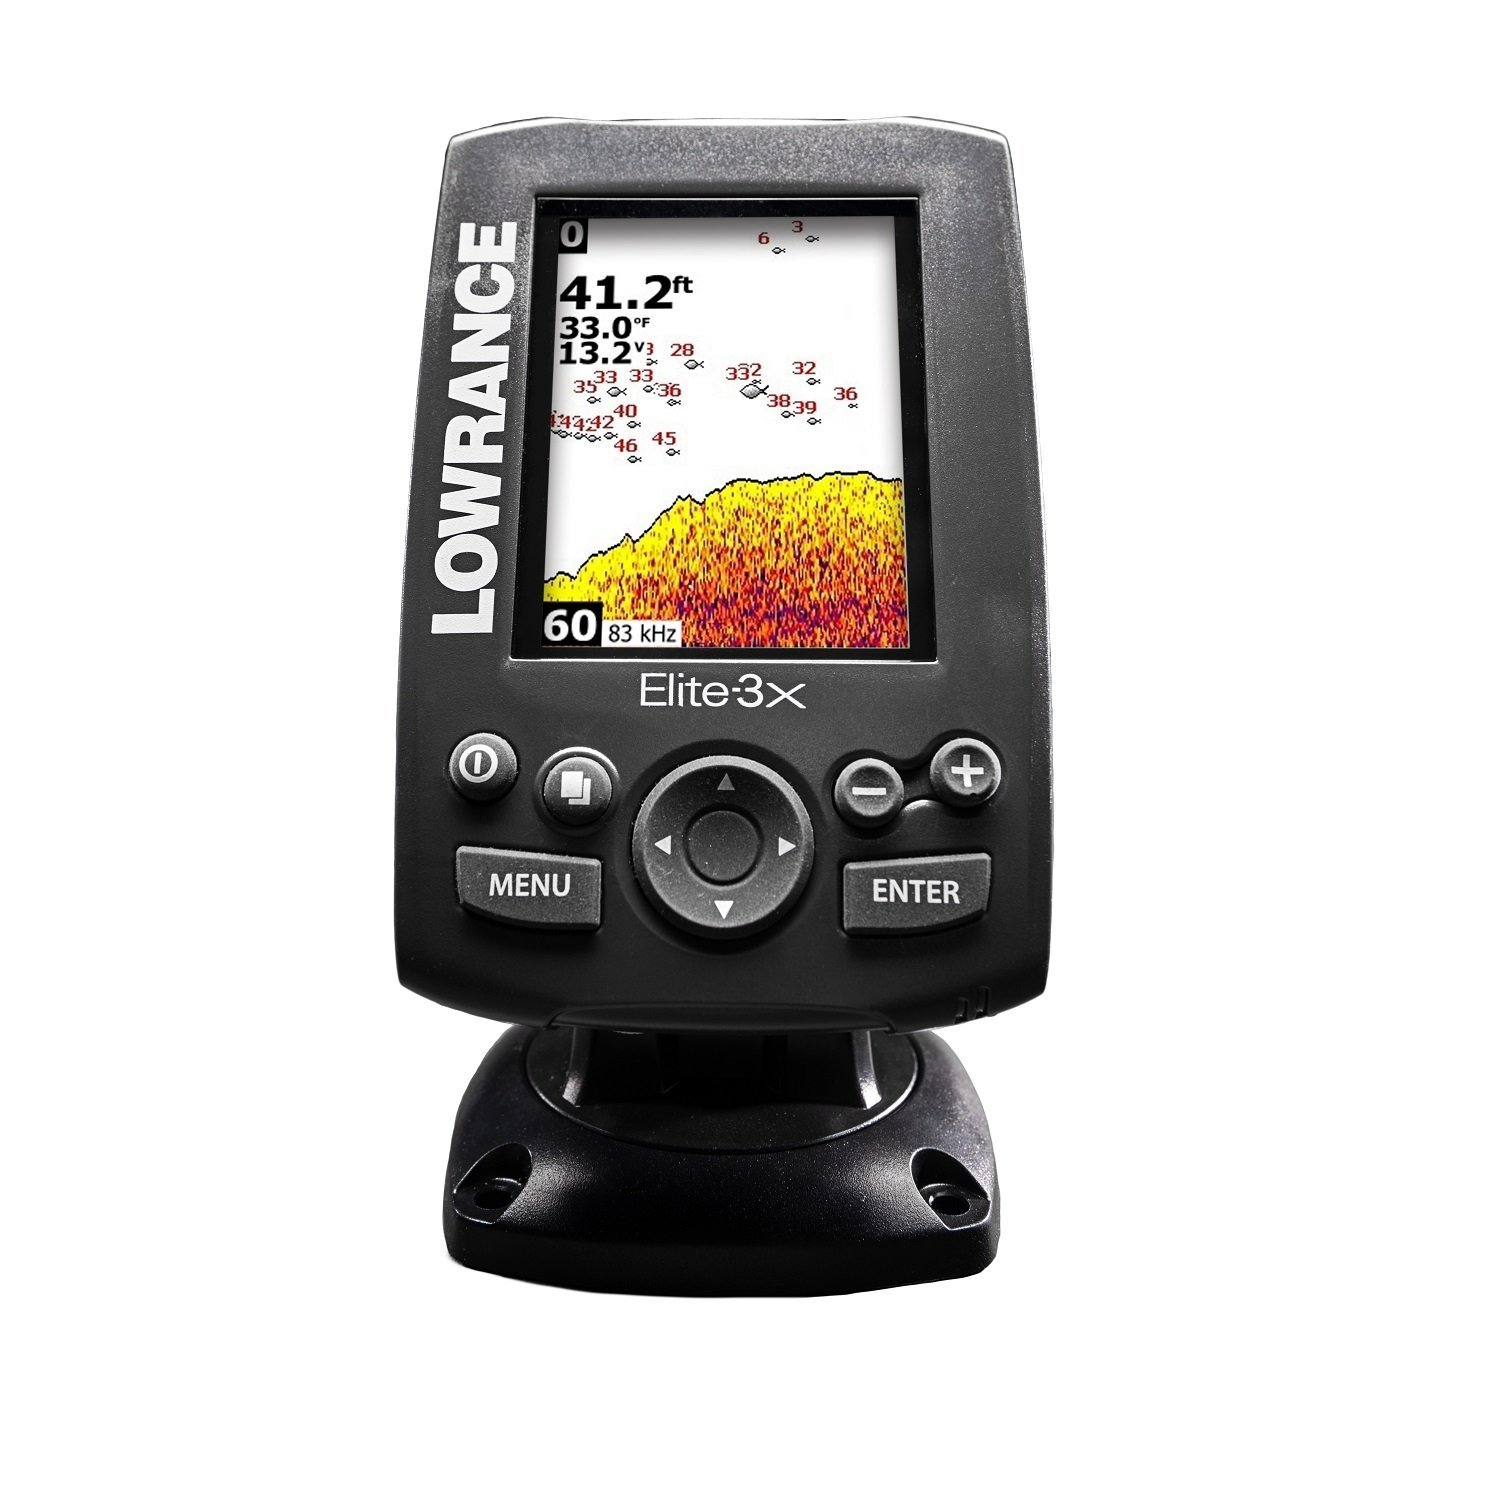 lowrance elite 3x review - fish finder guy, Fish Finder